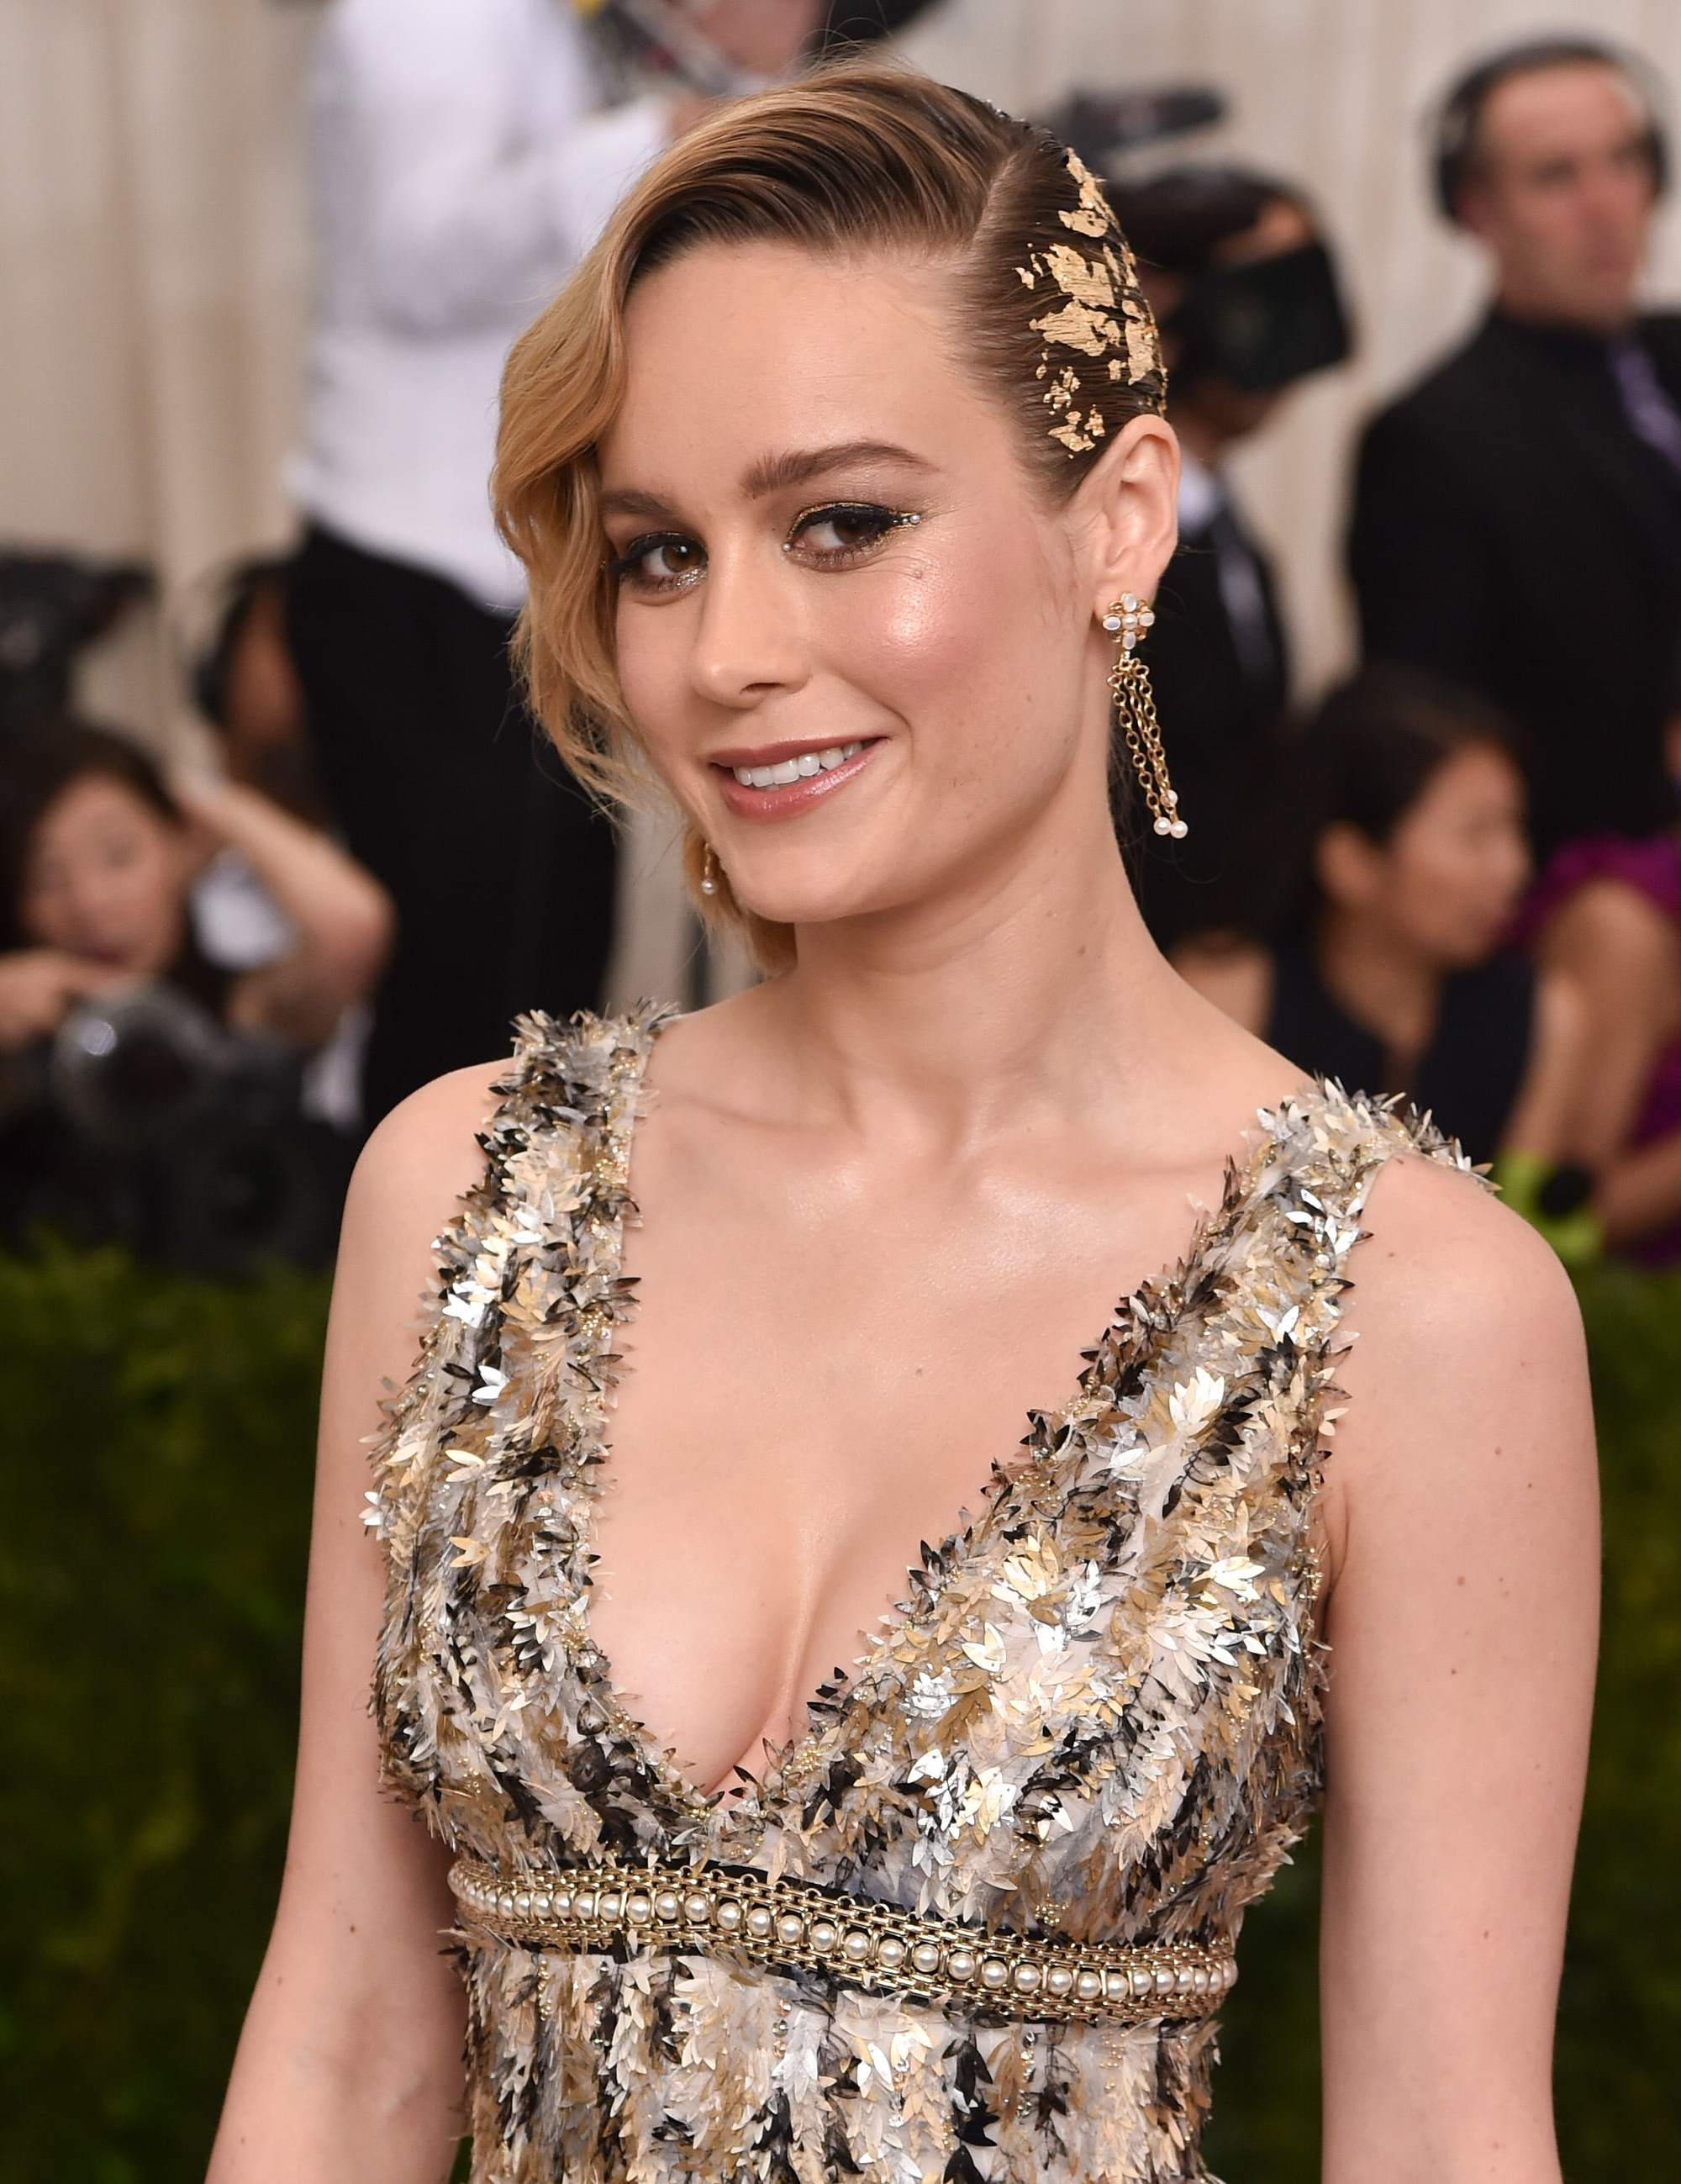 brie larson with gold hair foiling at the met gala event 2017